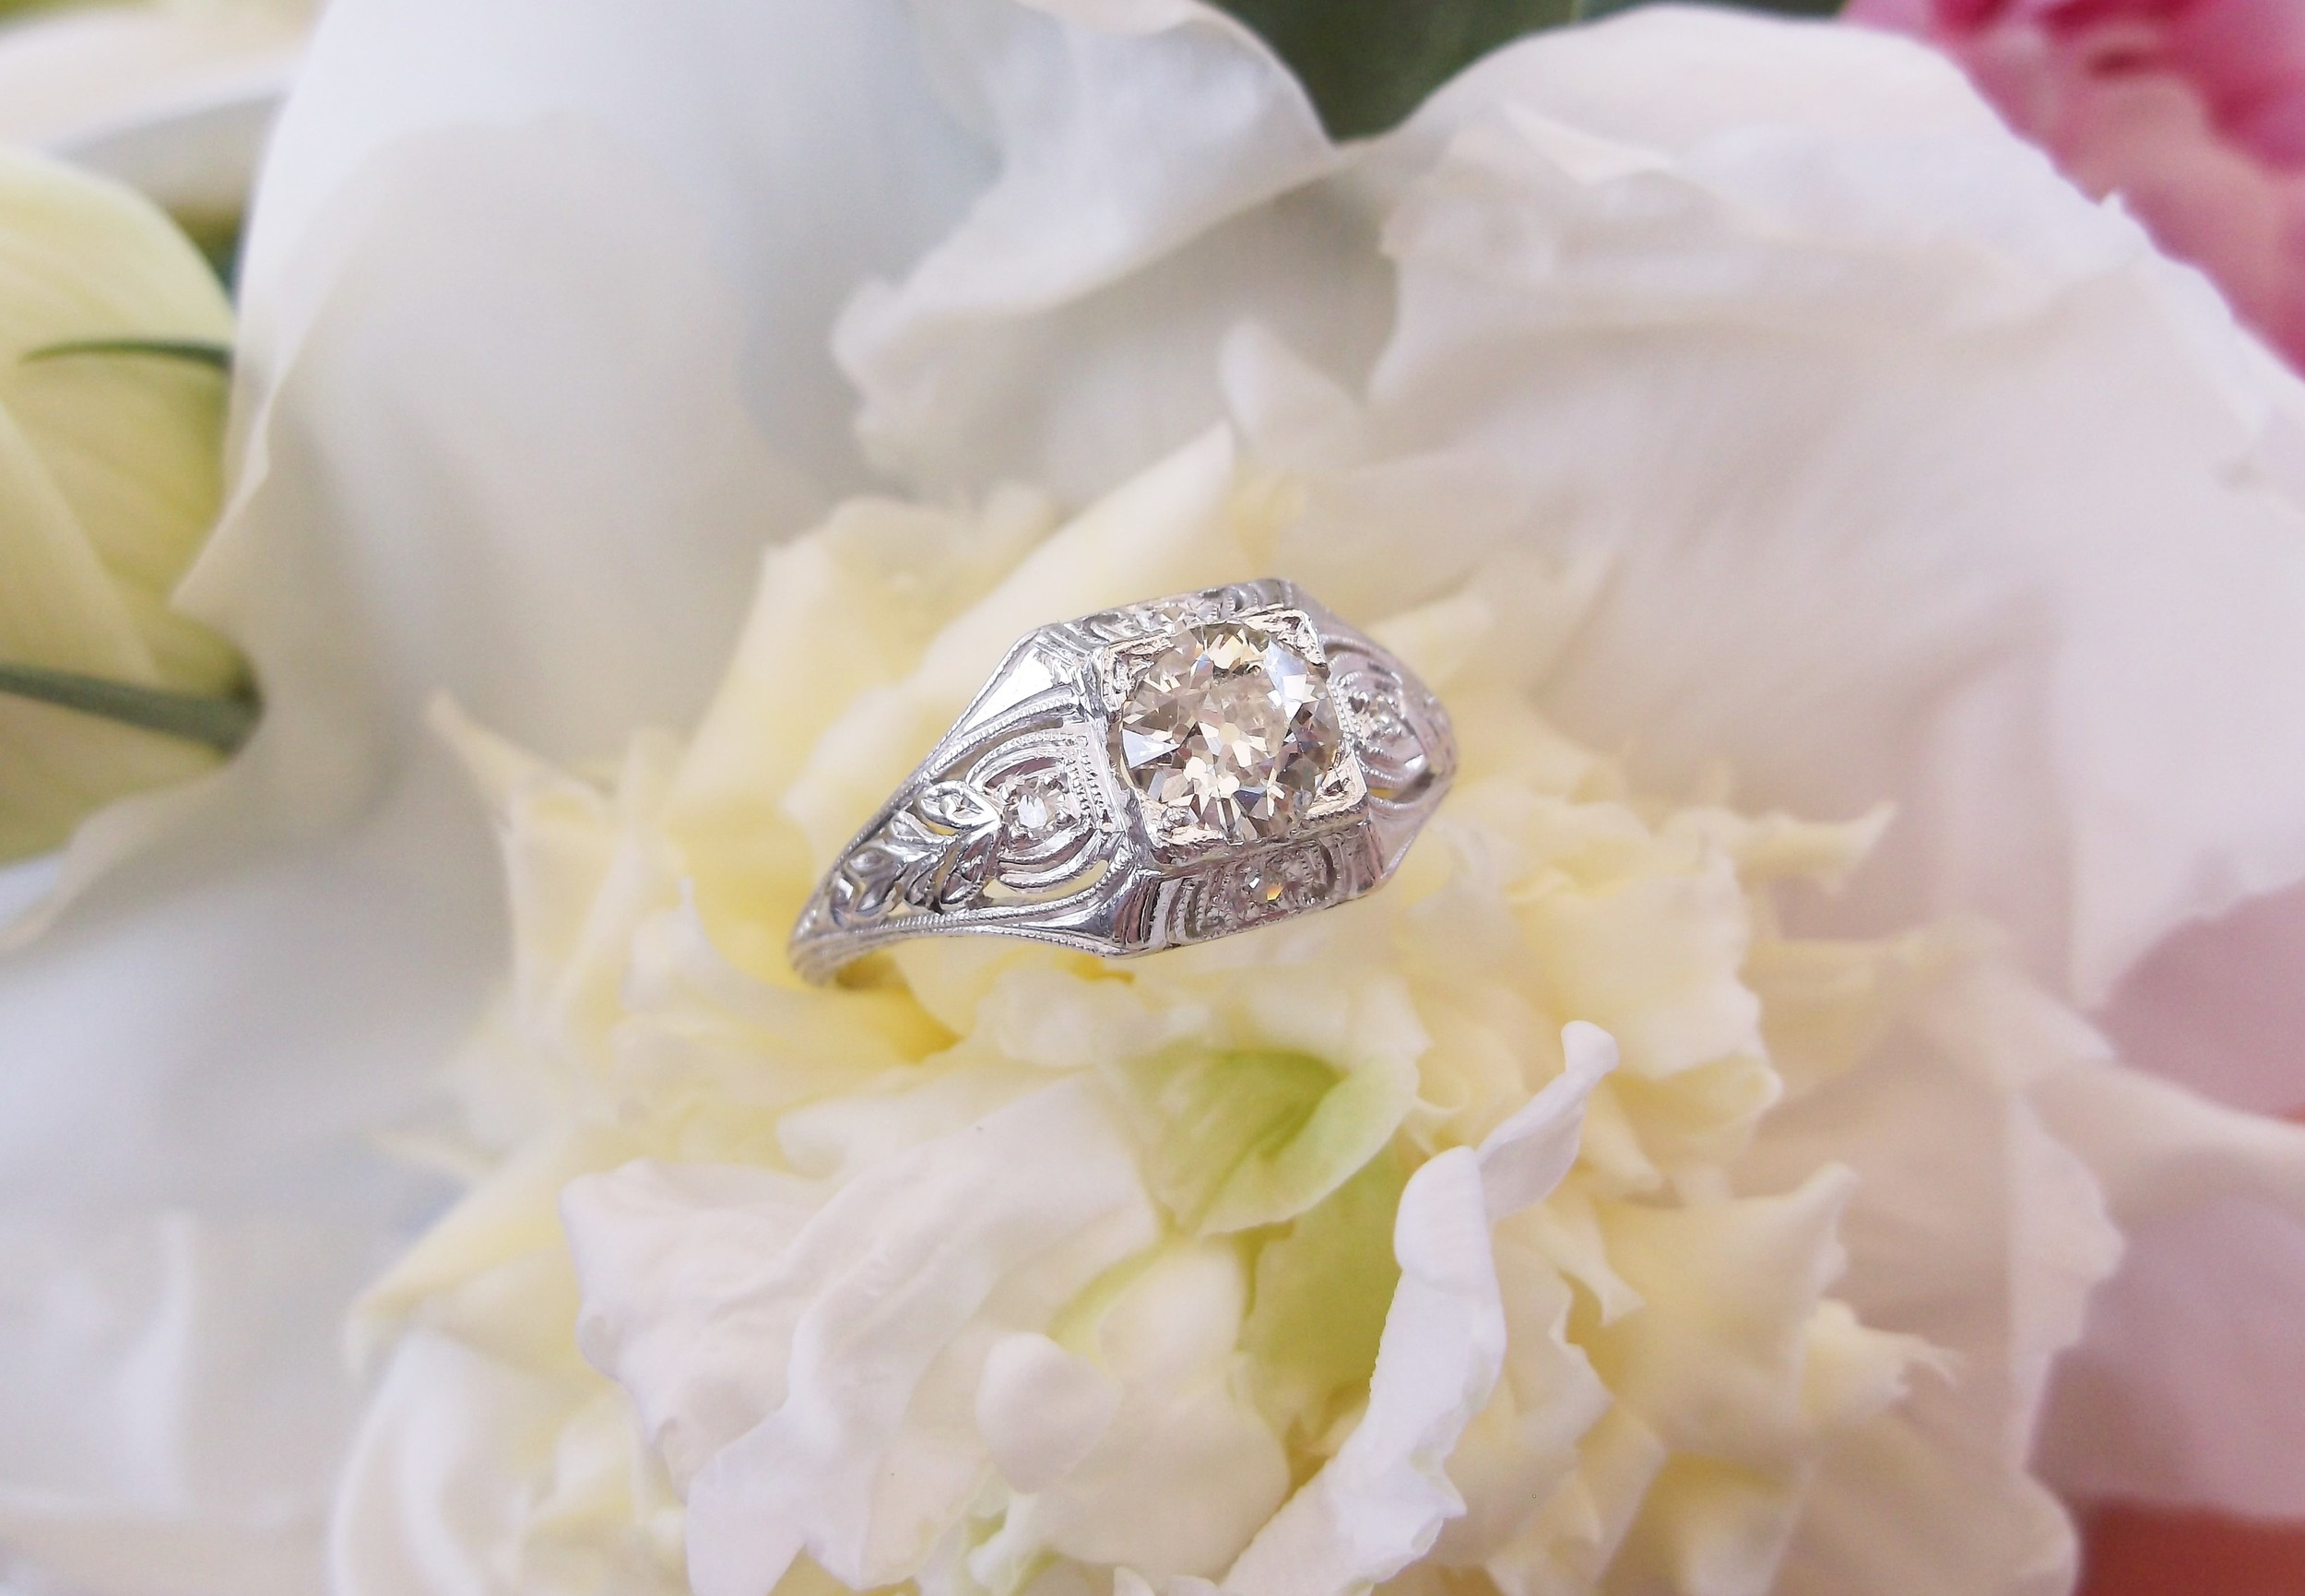 SOLD - Artfully crafted 1920's Old Mine cut diamond and platinum ring with a 0.62 carat Old Mine cut diamond in the center.